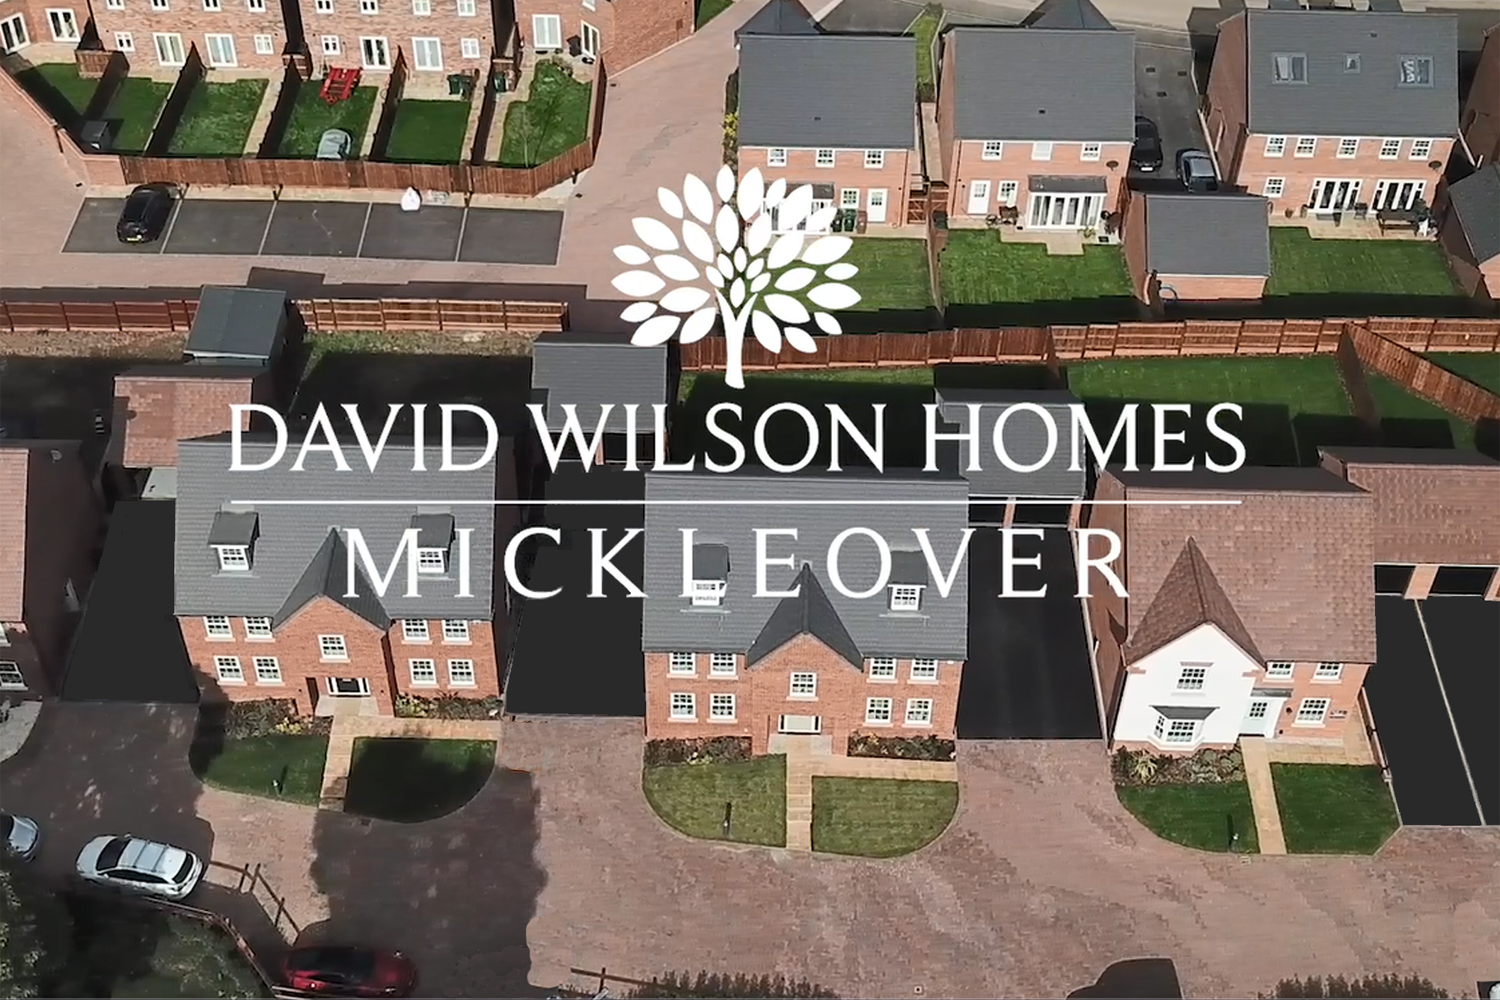 David Wilson Homes @Mickleover